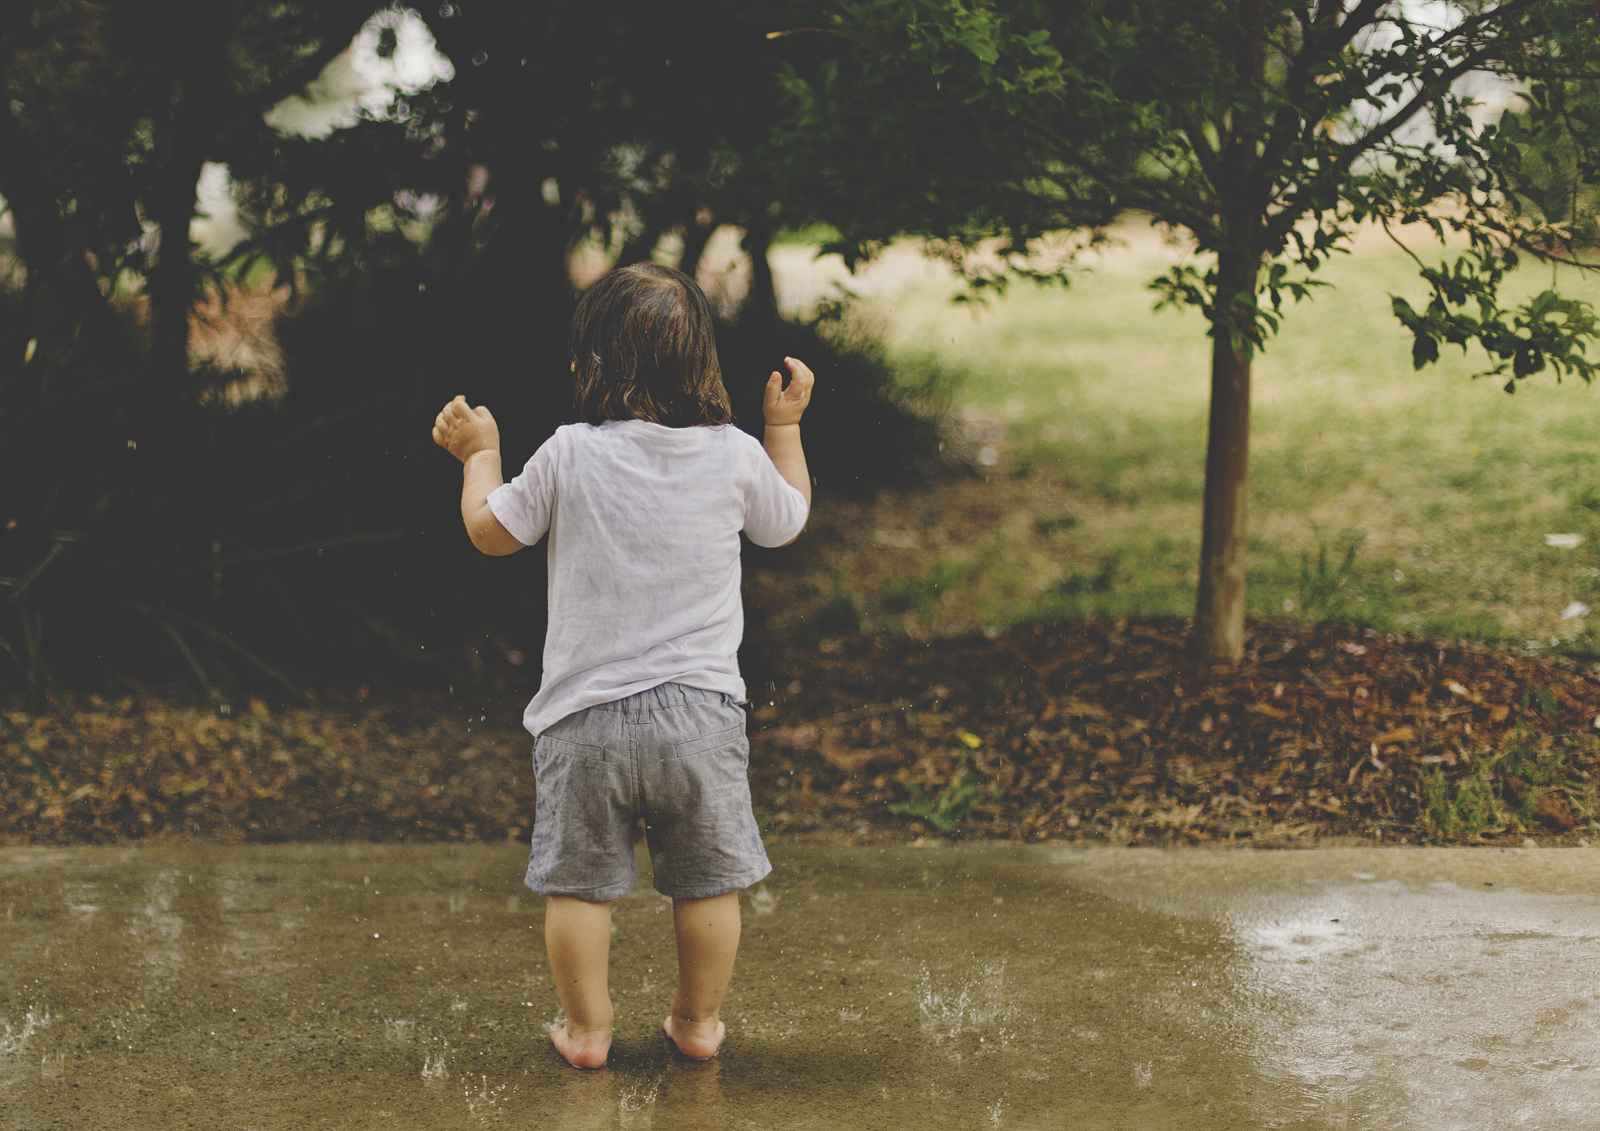 Toddler experiencing a rain shower!